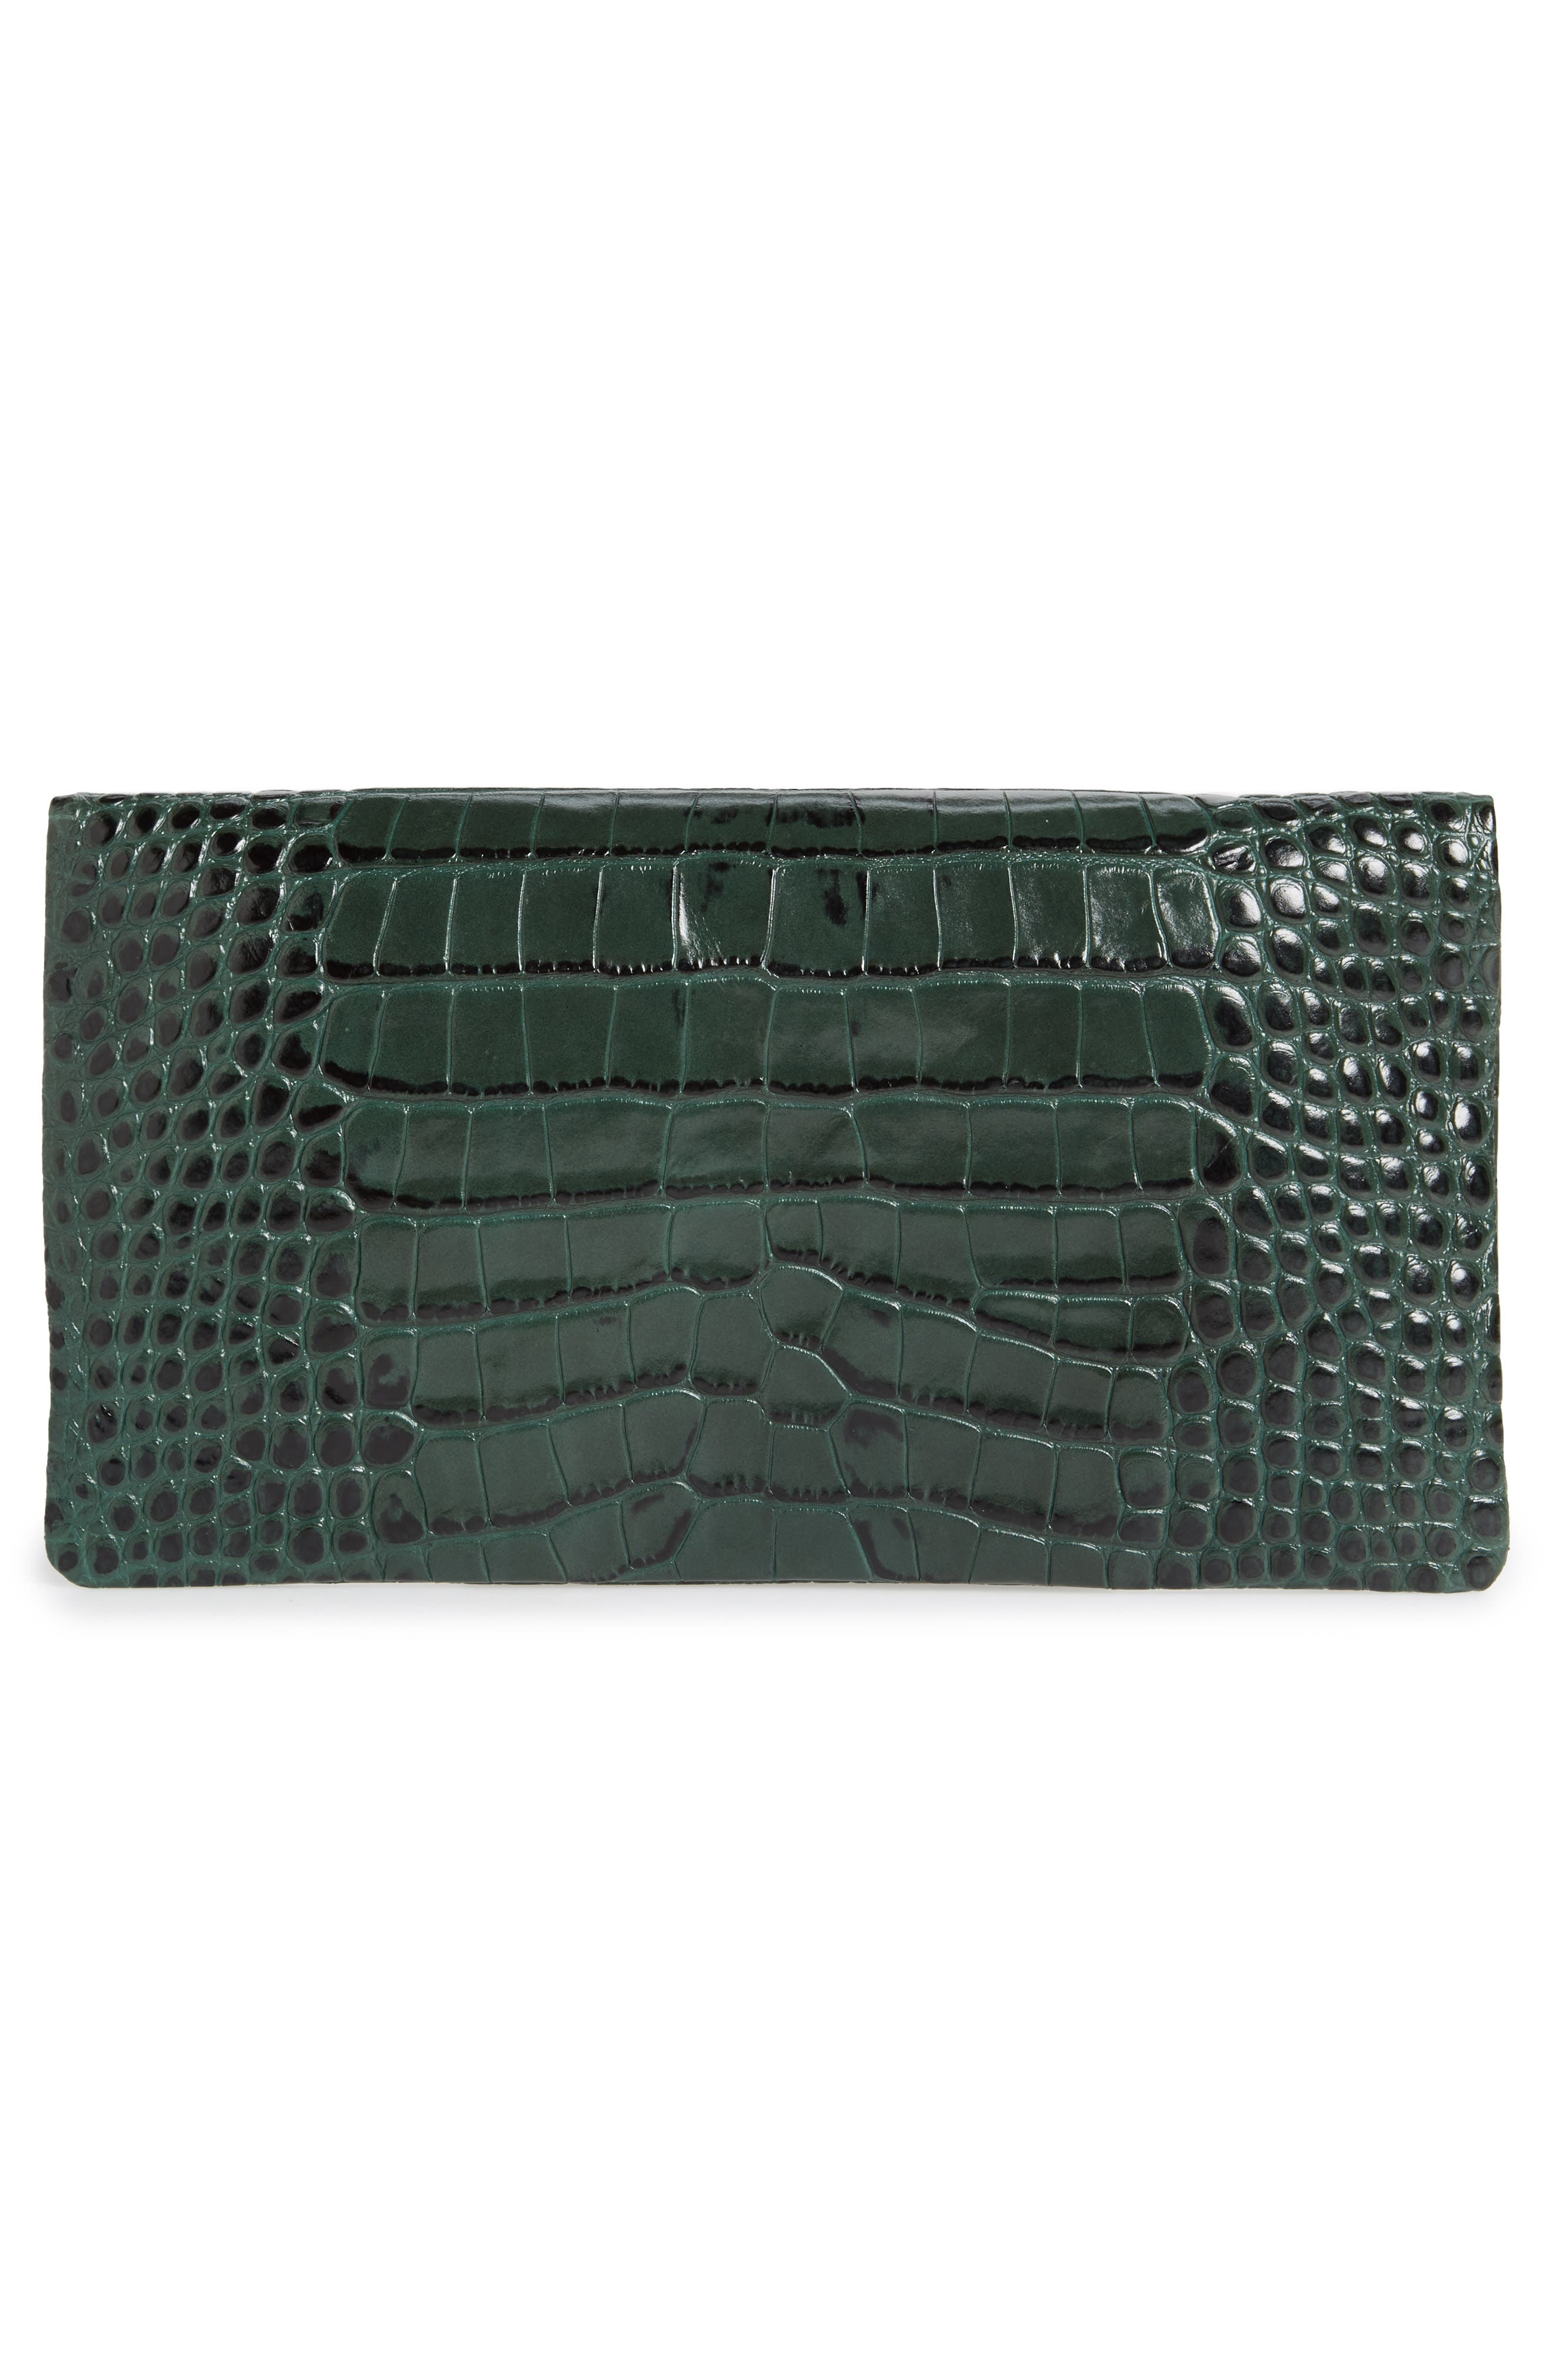 Croc Embossed Leather Foldover Clutch,                             Alternate thumbnail 3, color,                             300